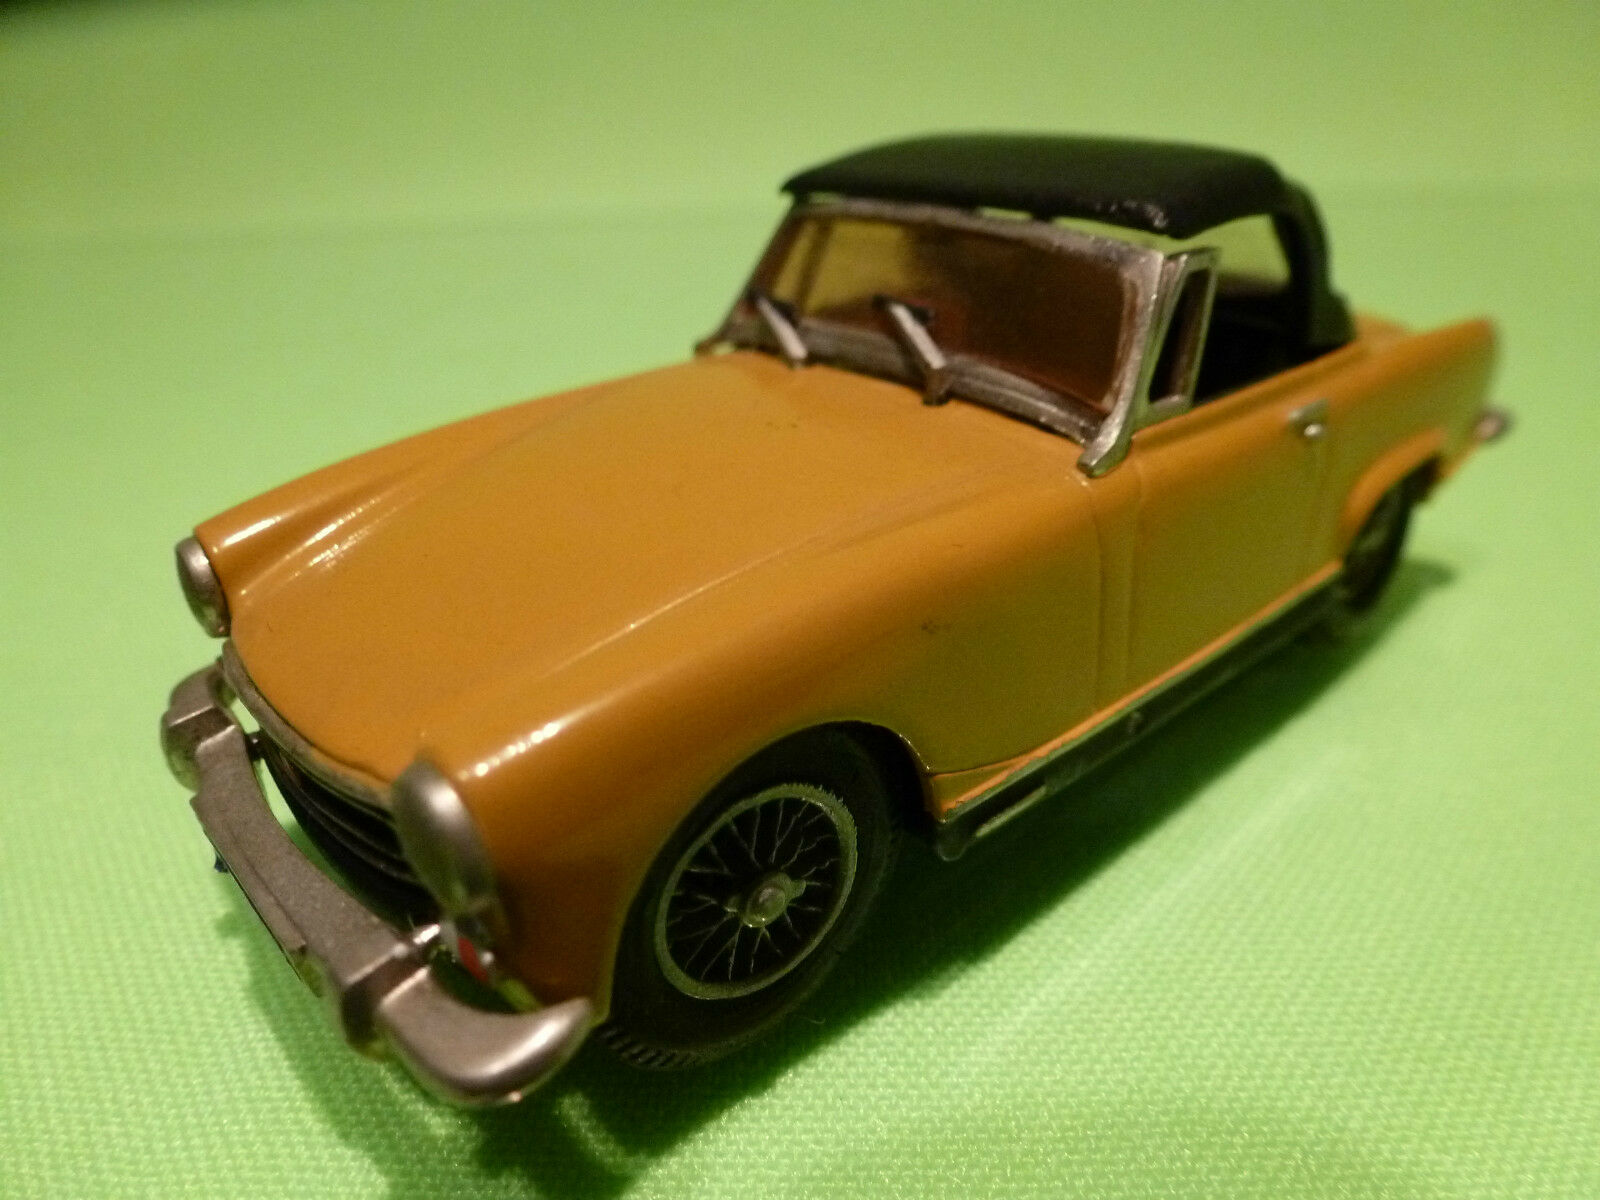 JEM METAL MINIATURES 1 43 MG MIDGET SOFTTOP  - RARE SELTEN  - GOOD CONDITION